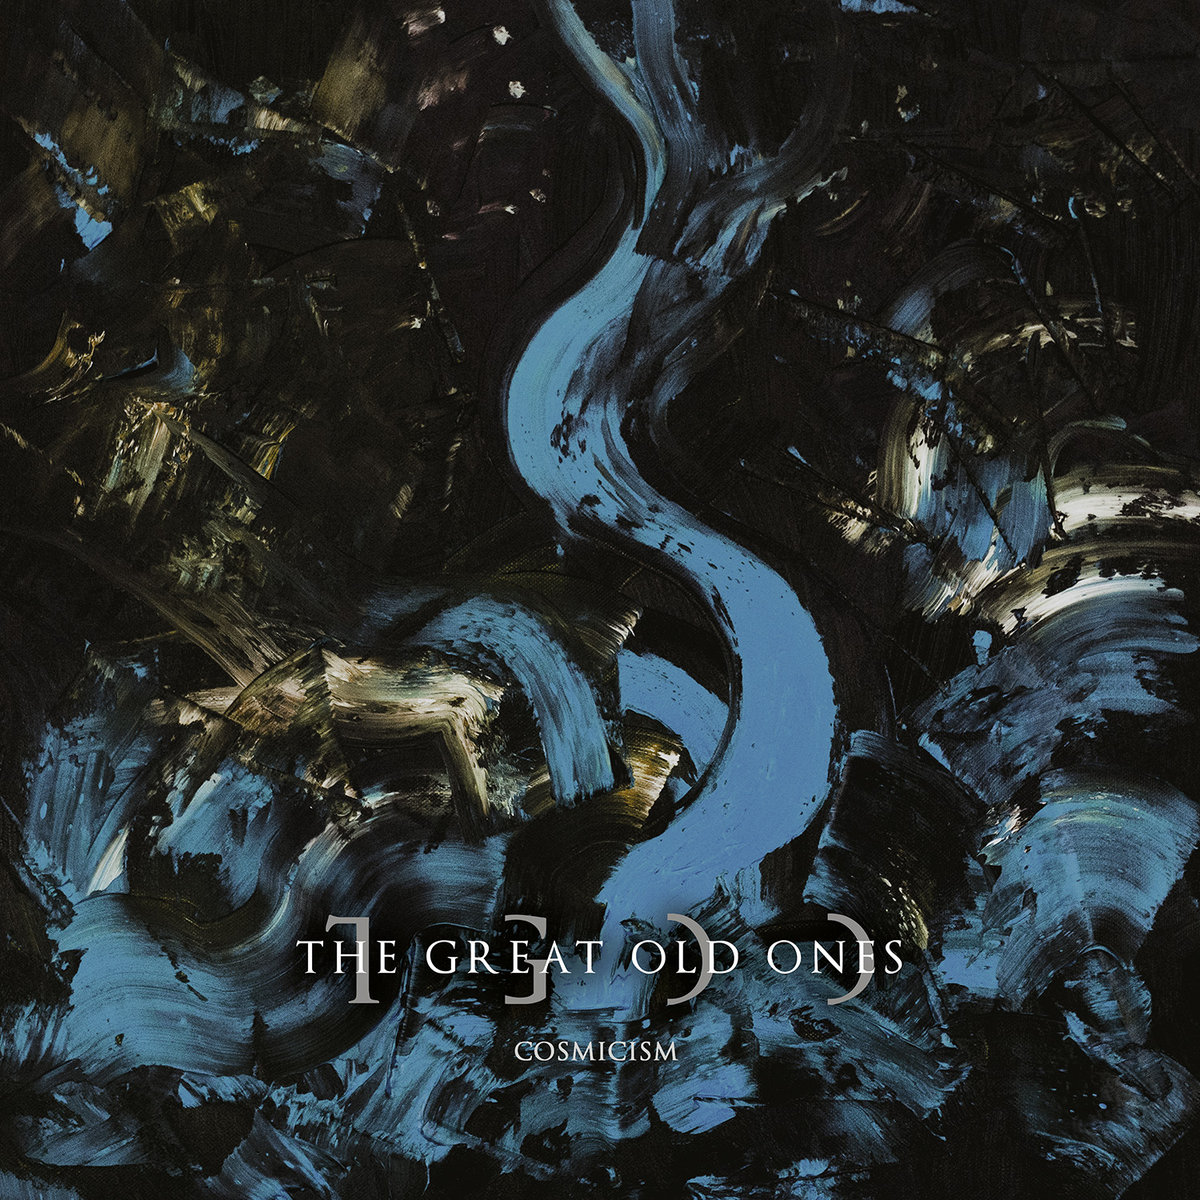 The Great Old Ones - Cosmicism [Deluxe Edition]